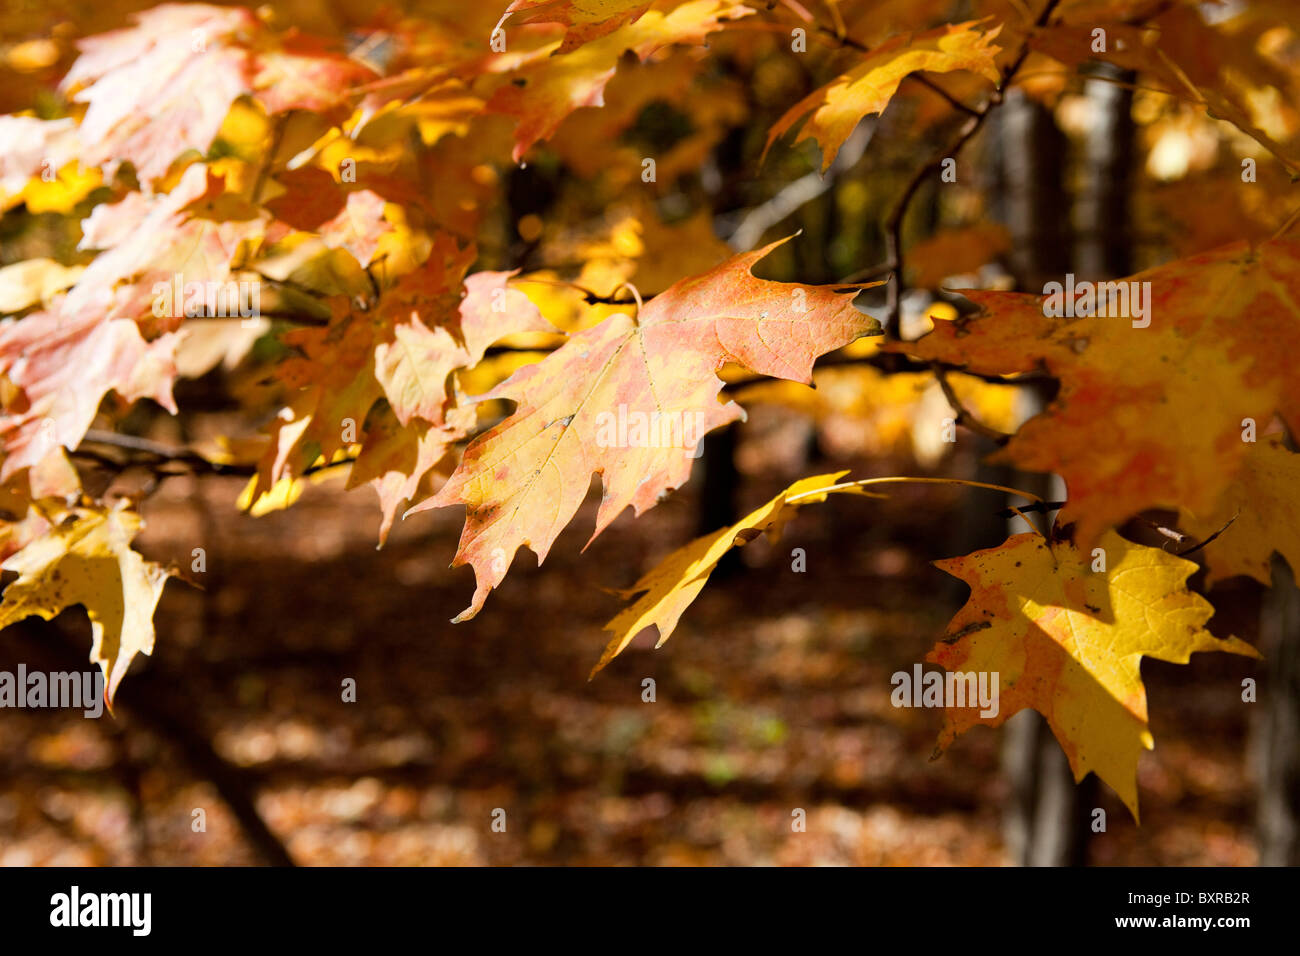 Autumn leaves on branch - Stock Image